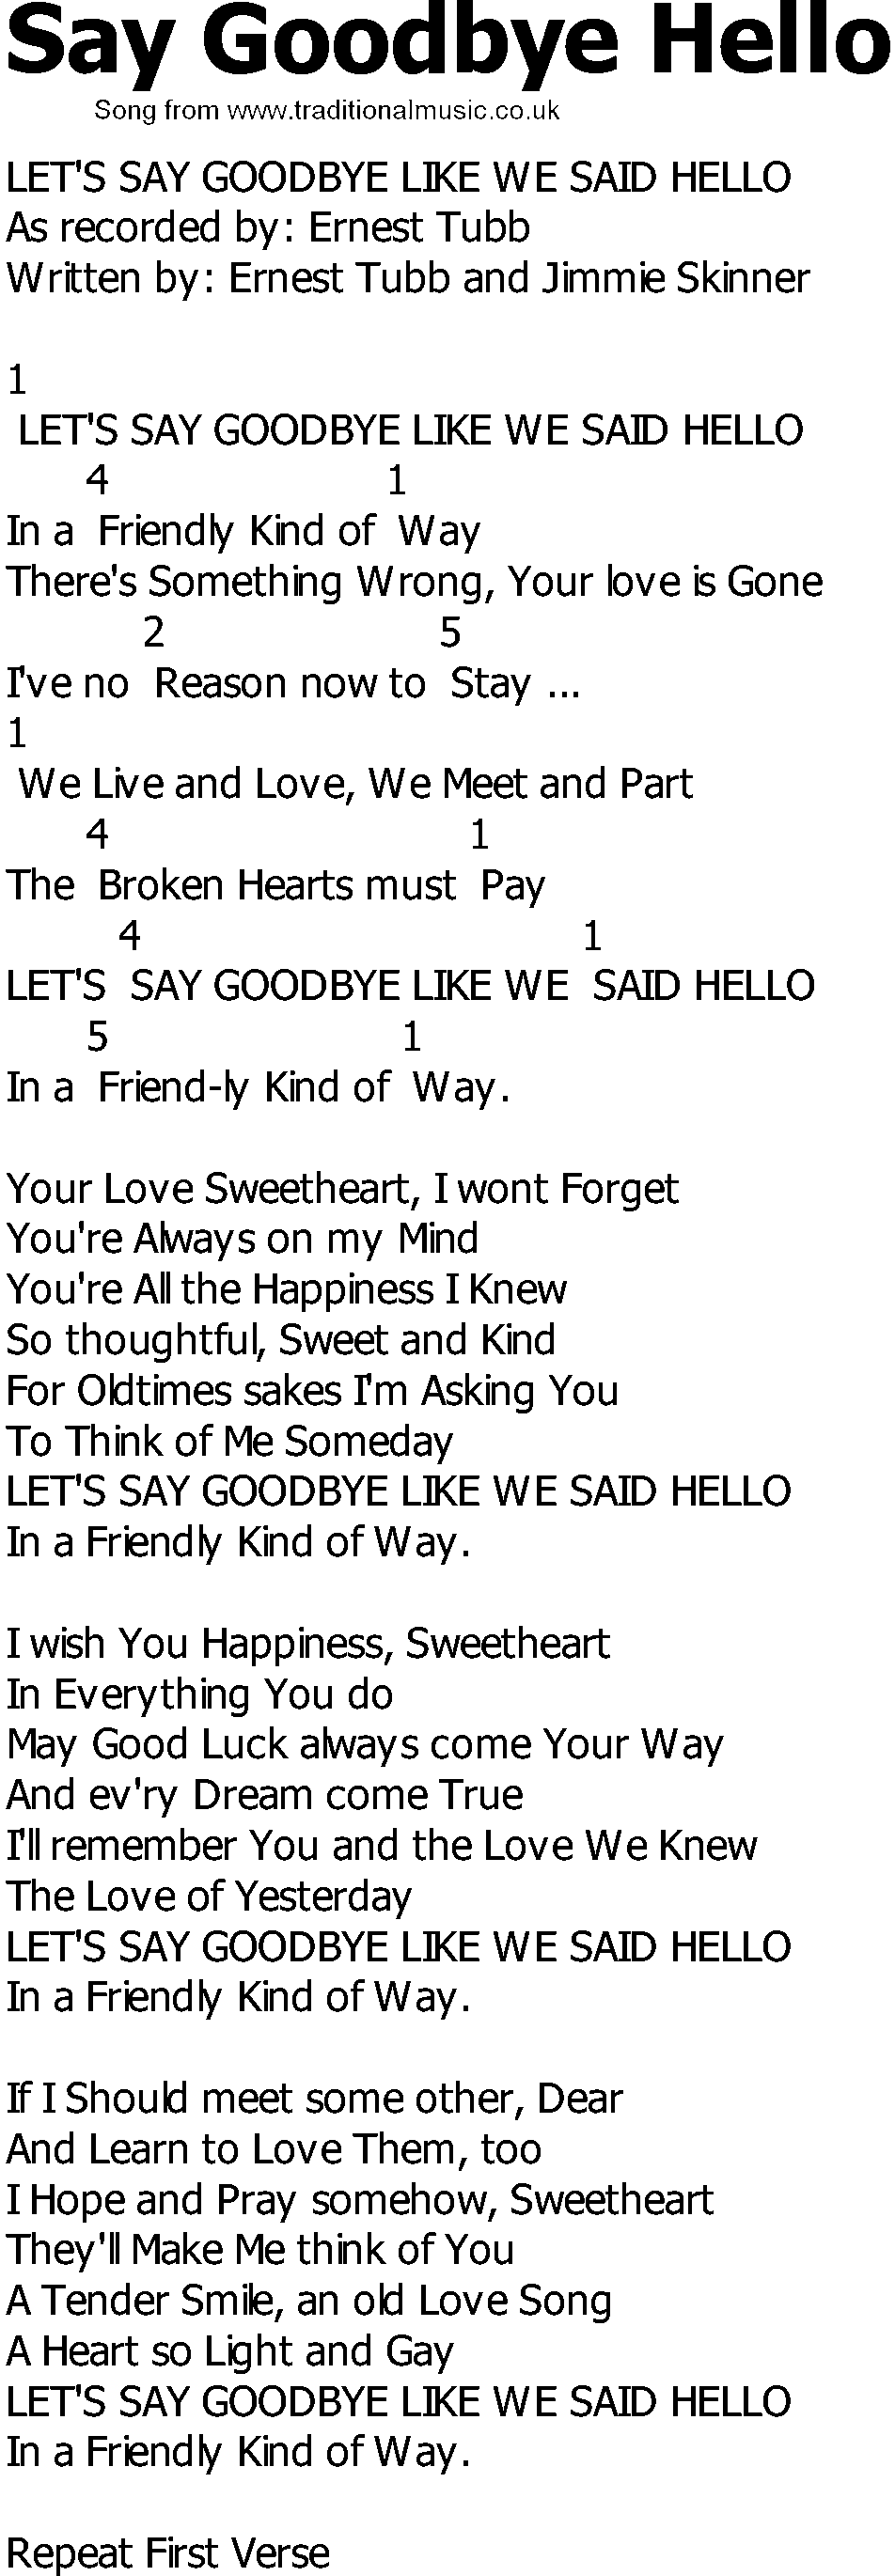 Lyrics containing the term: Hello, Goodbye